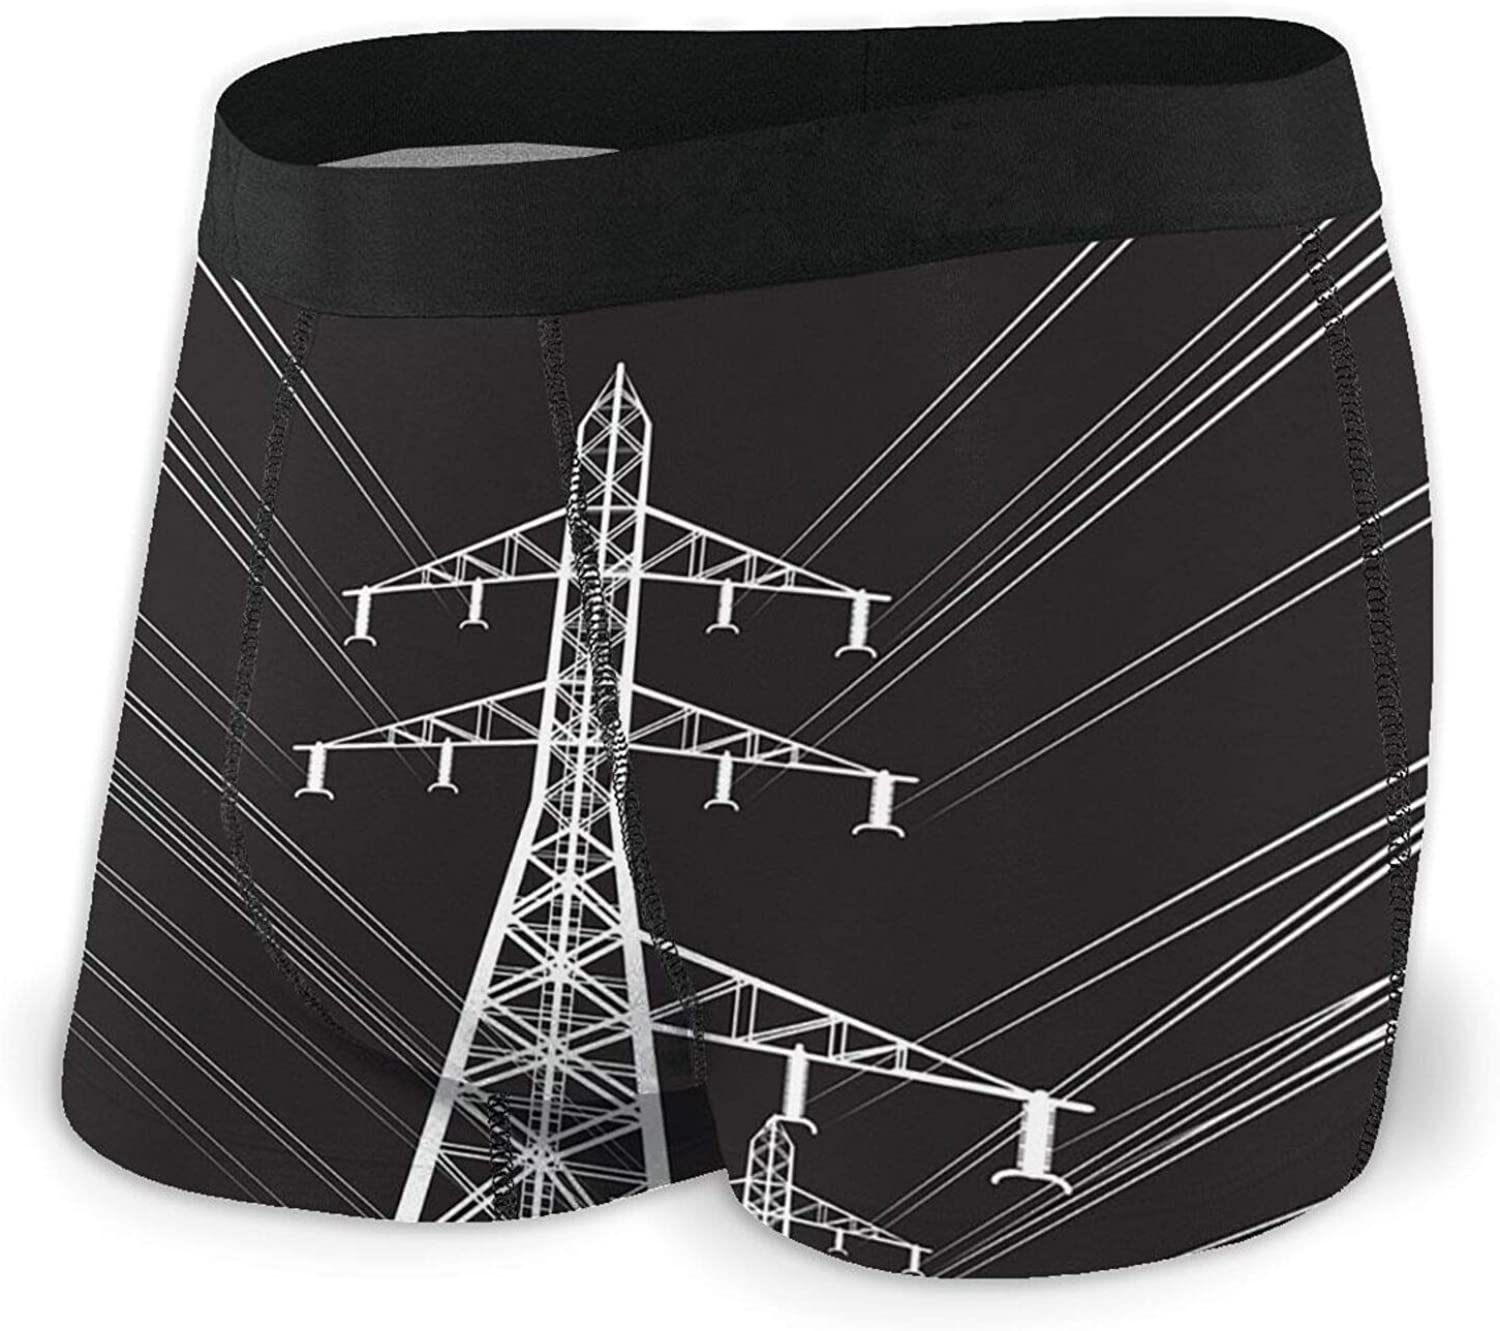 Max lowest price 84% OFF TZT Power Lines Men's Boxer Briefs Breathable Comfortable Underw